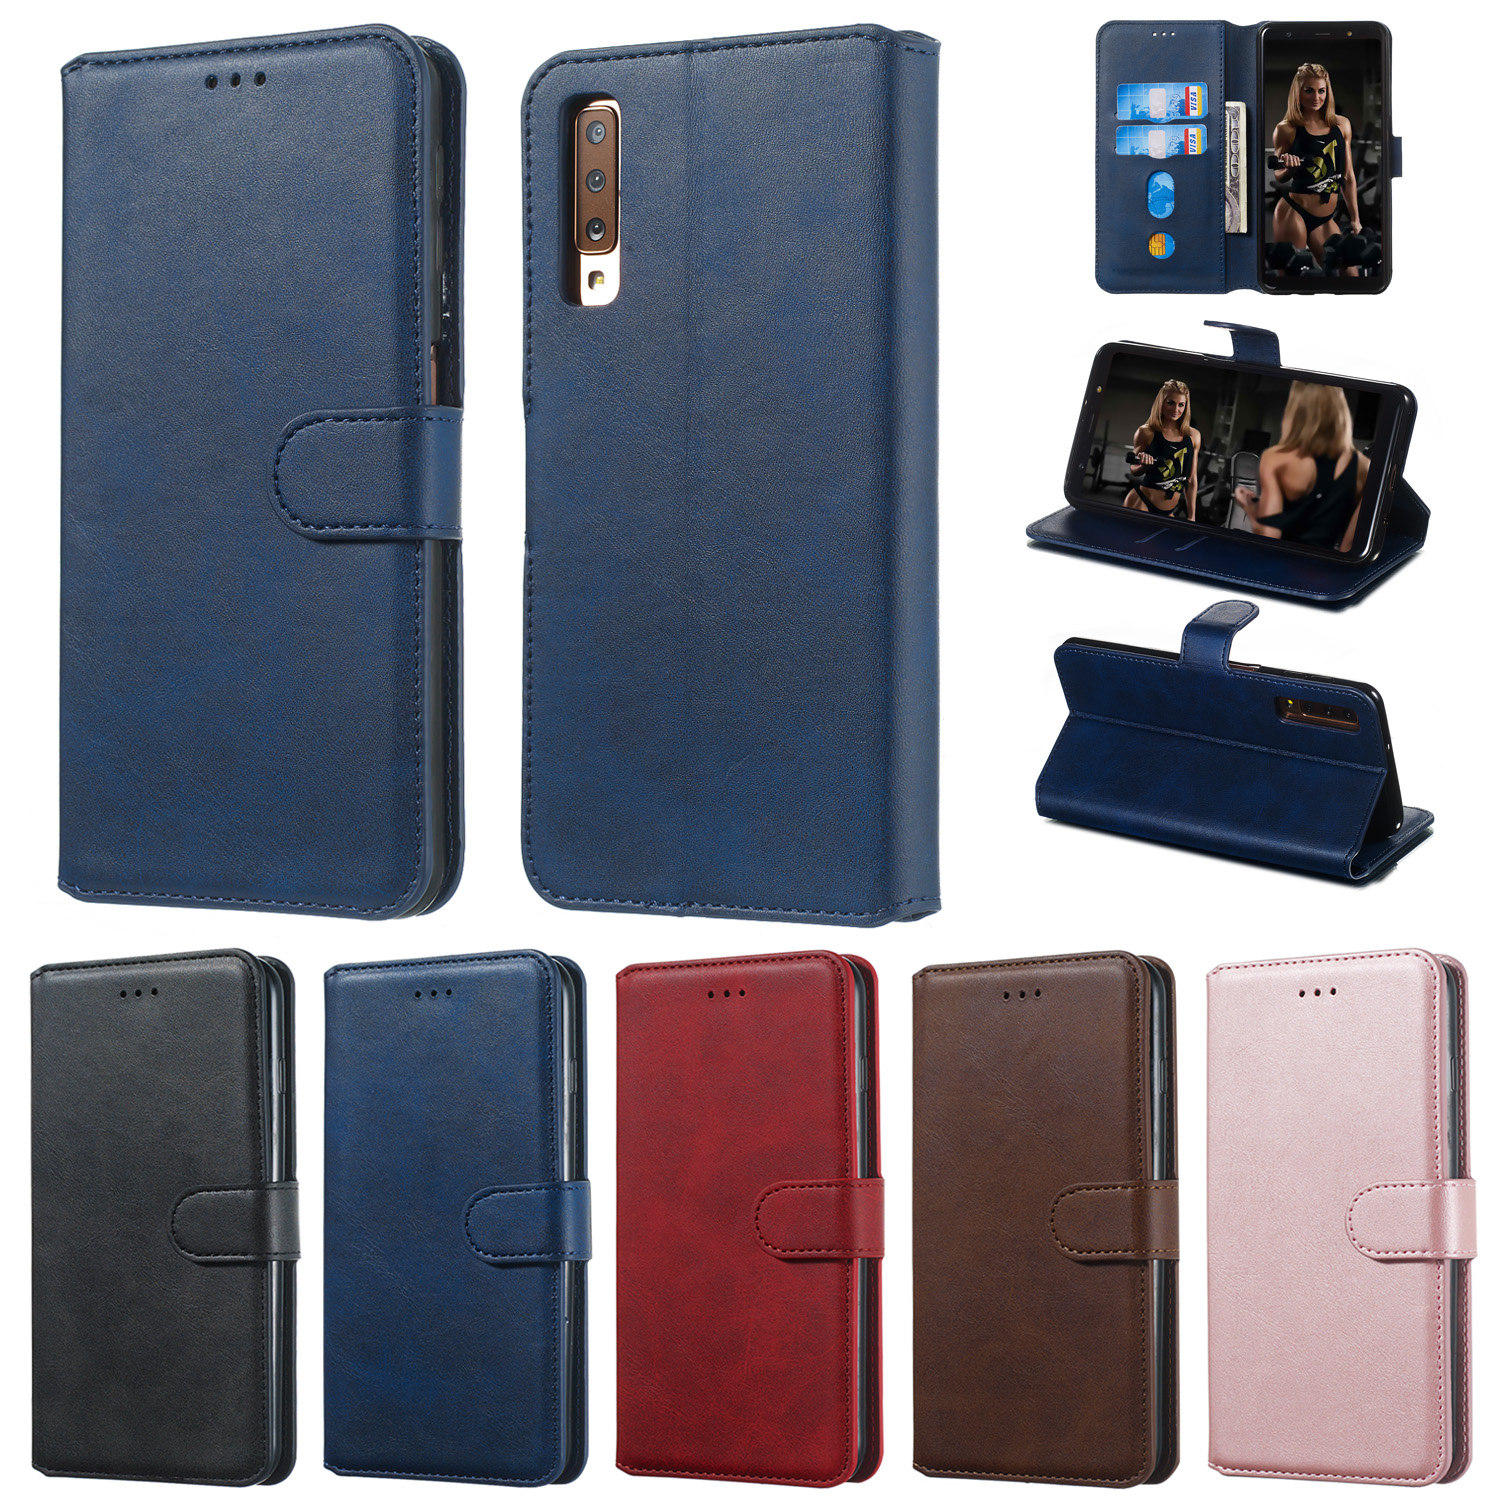 Retro Leather <font><b>Flip</b></font> Cover For <font><b>Samsung</b></font> Galaxy S20 Ultra S10 S9 S8 Plus J7 2016 J3 <font><b>J5</b></font> <font><b>2017</b></font> J4 J6 Plus A7 2018 A50 A51 Wallet <font><b>Case</b></font> image